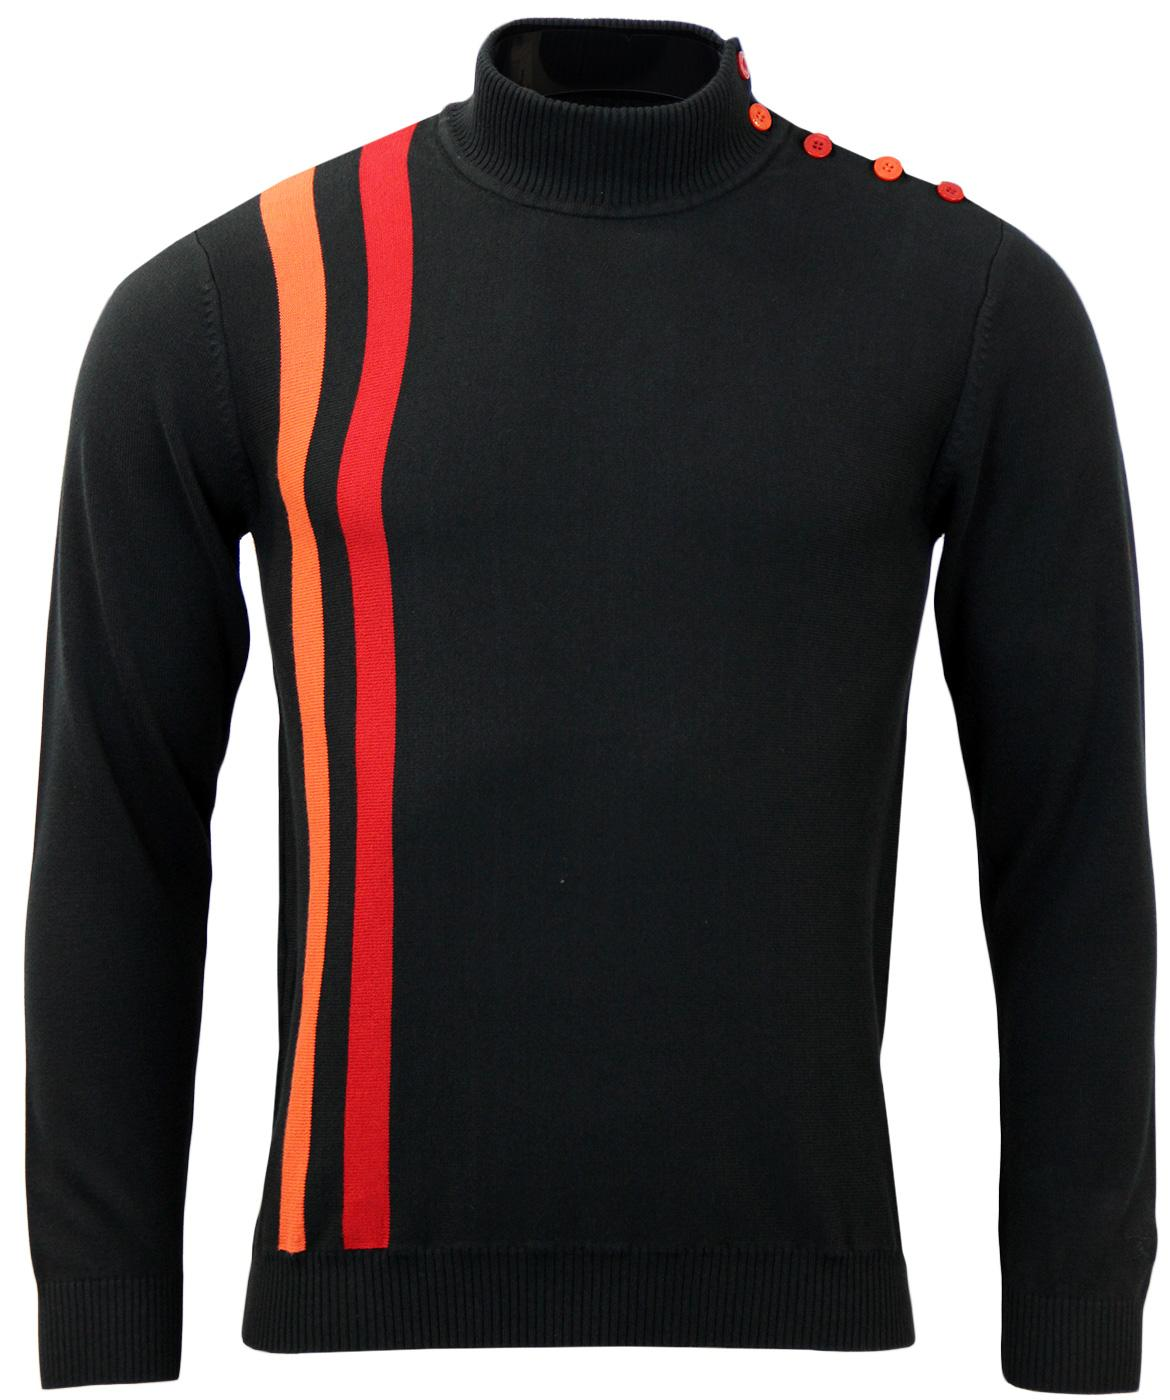 Racing Coleridge MADCAP Mens Retro Mod Turtle Neck